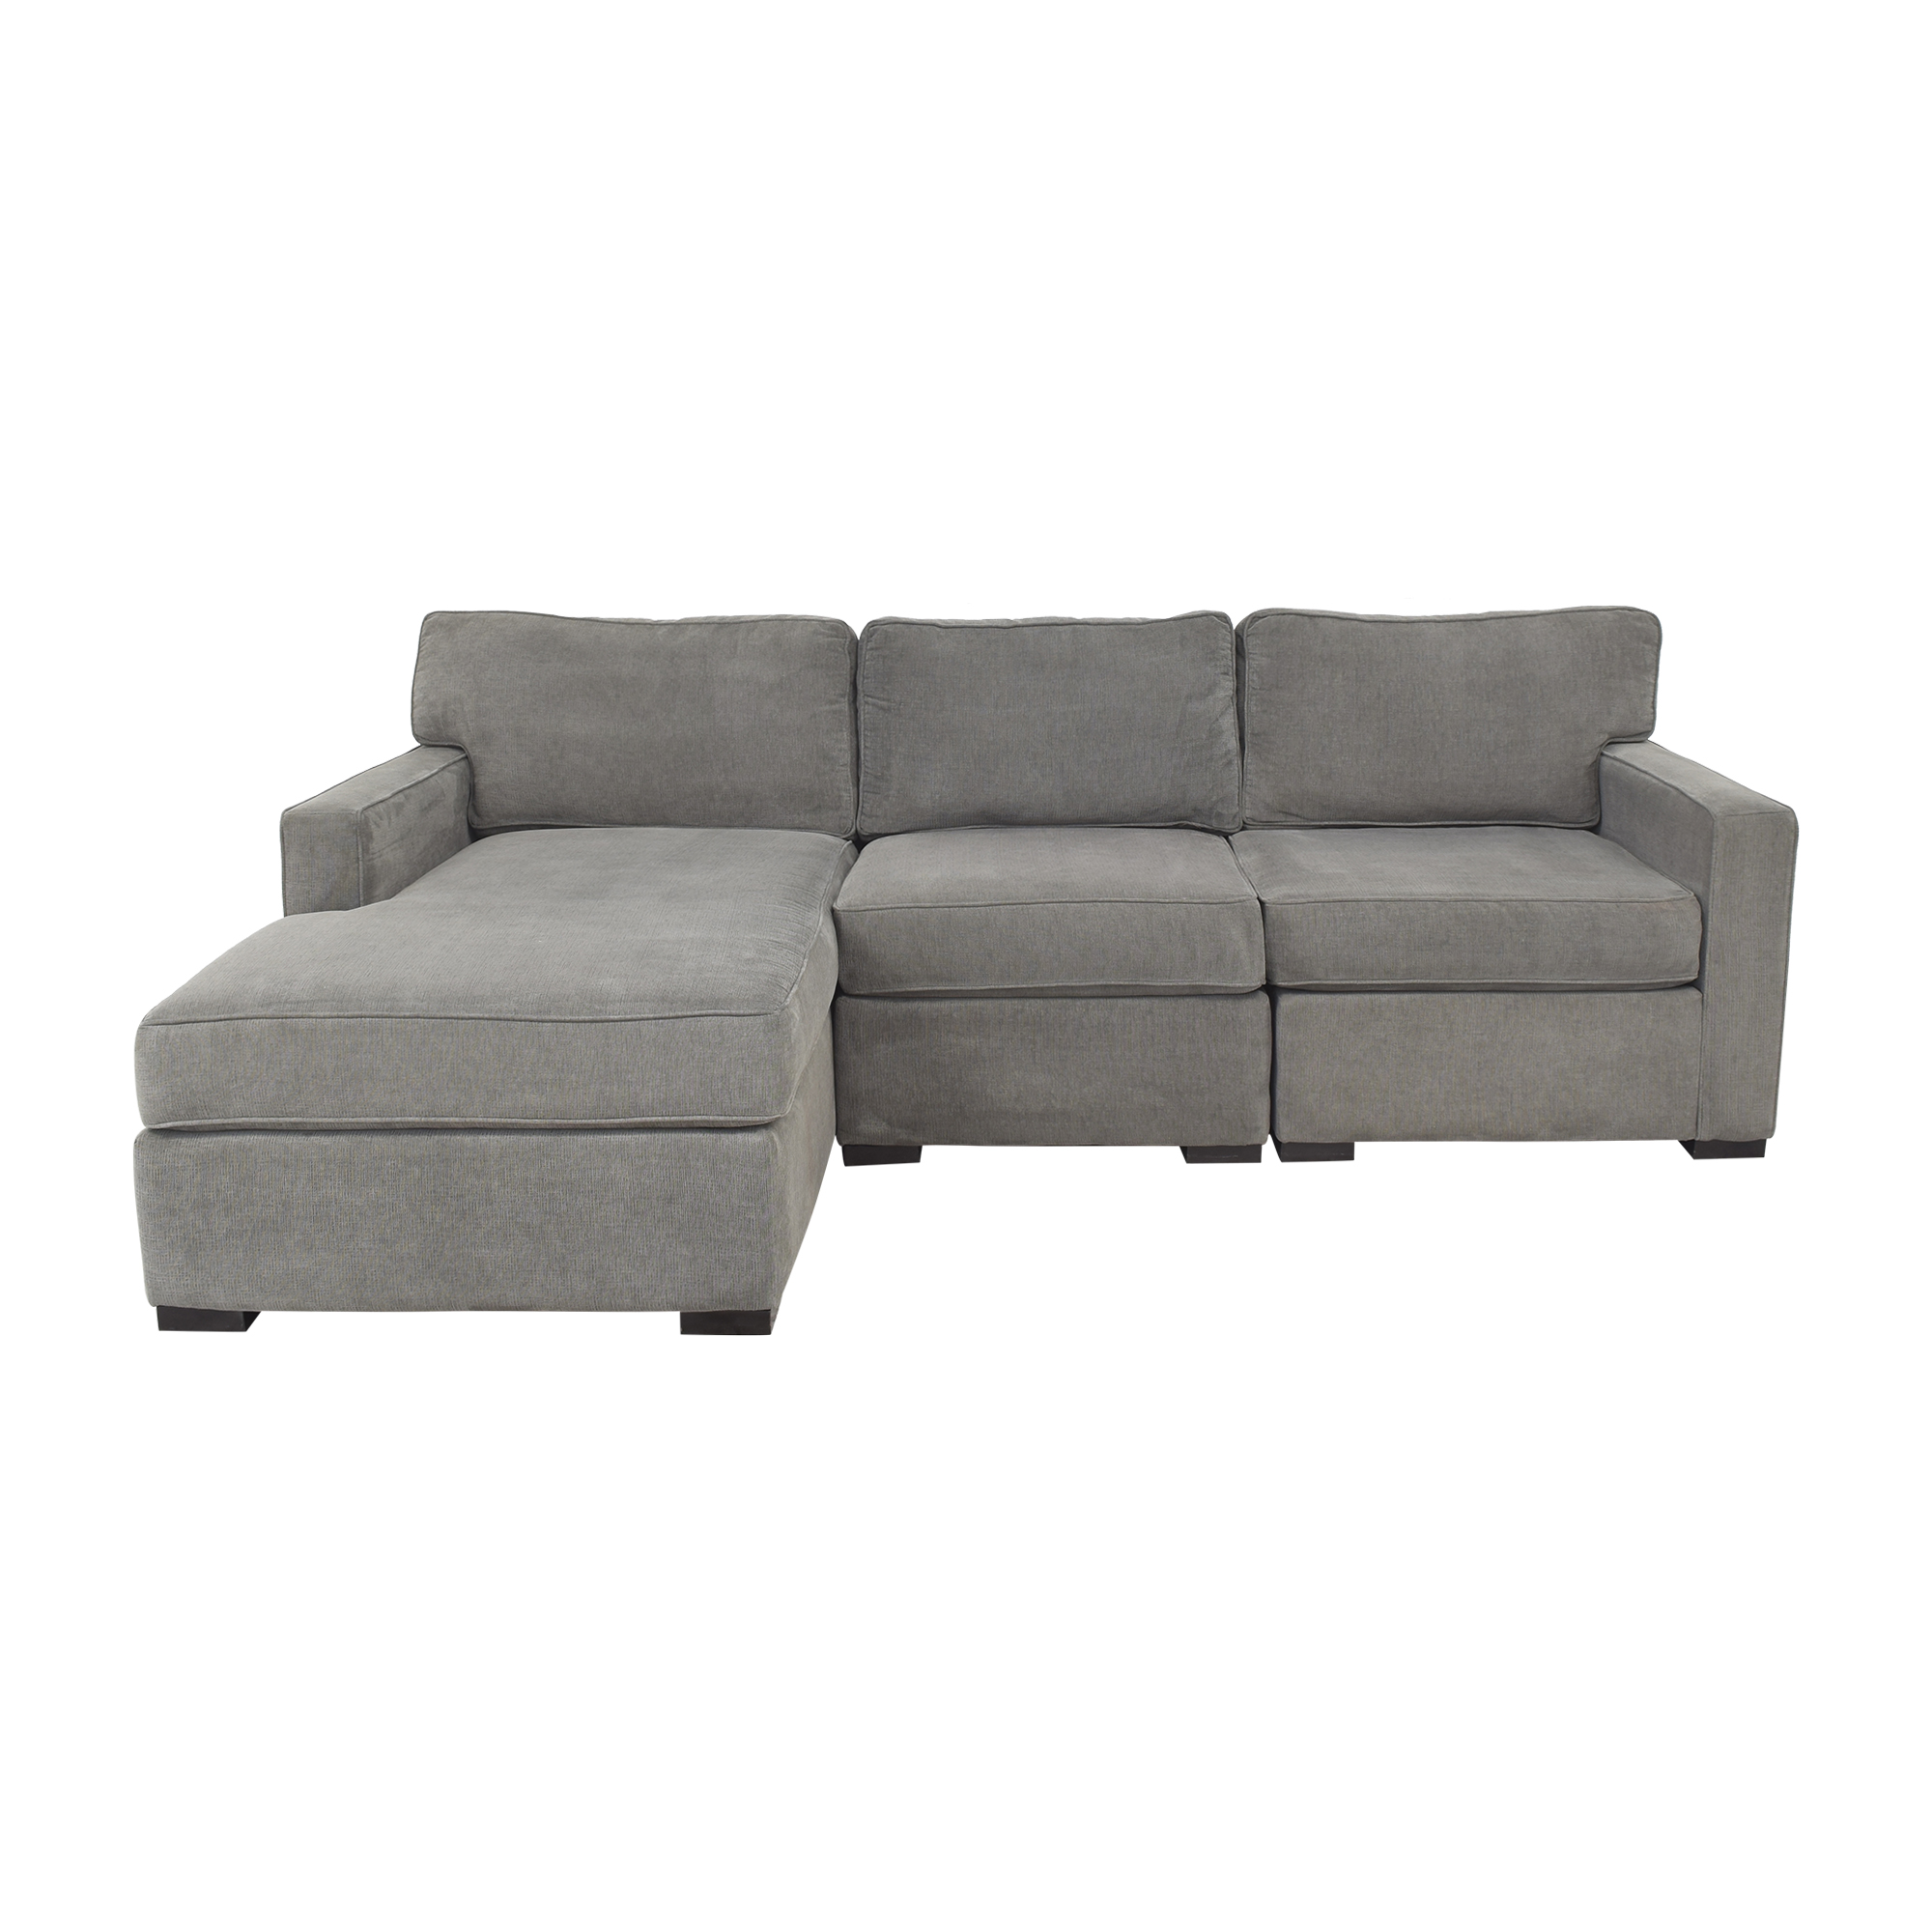 Macy's Macy's Jonathan Louis Sectional Sofa nyc